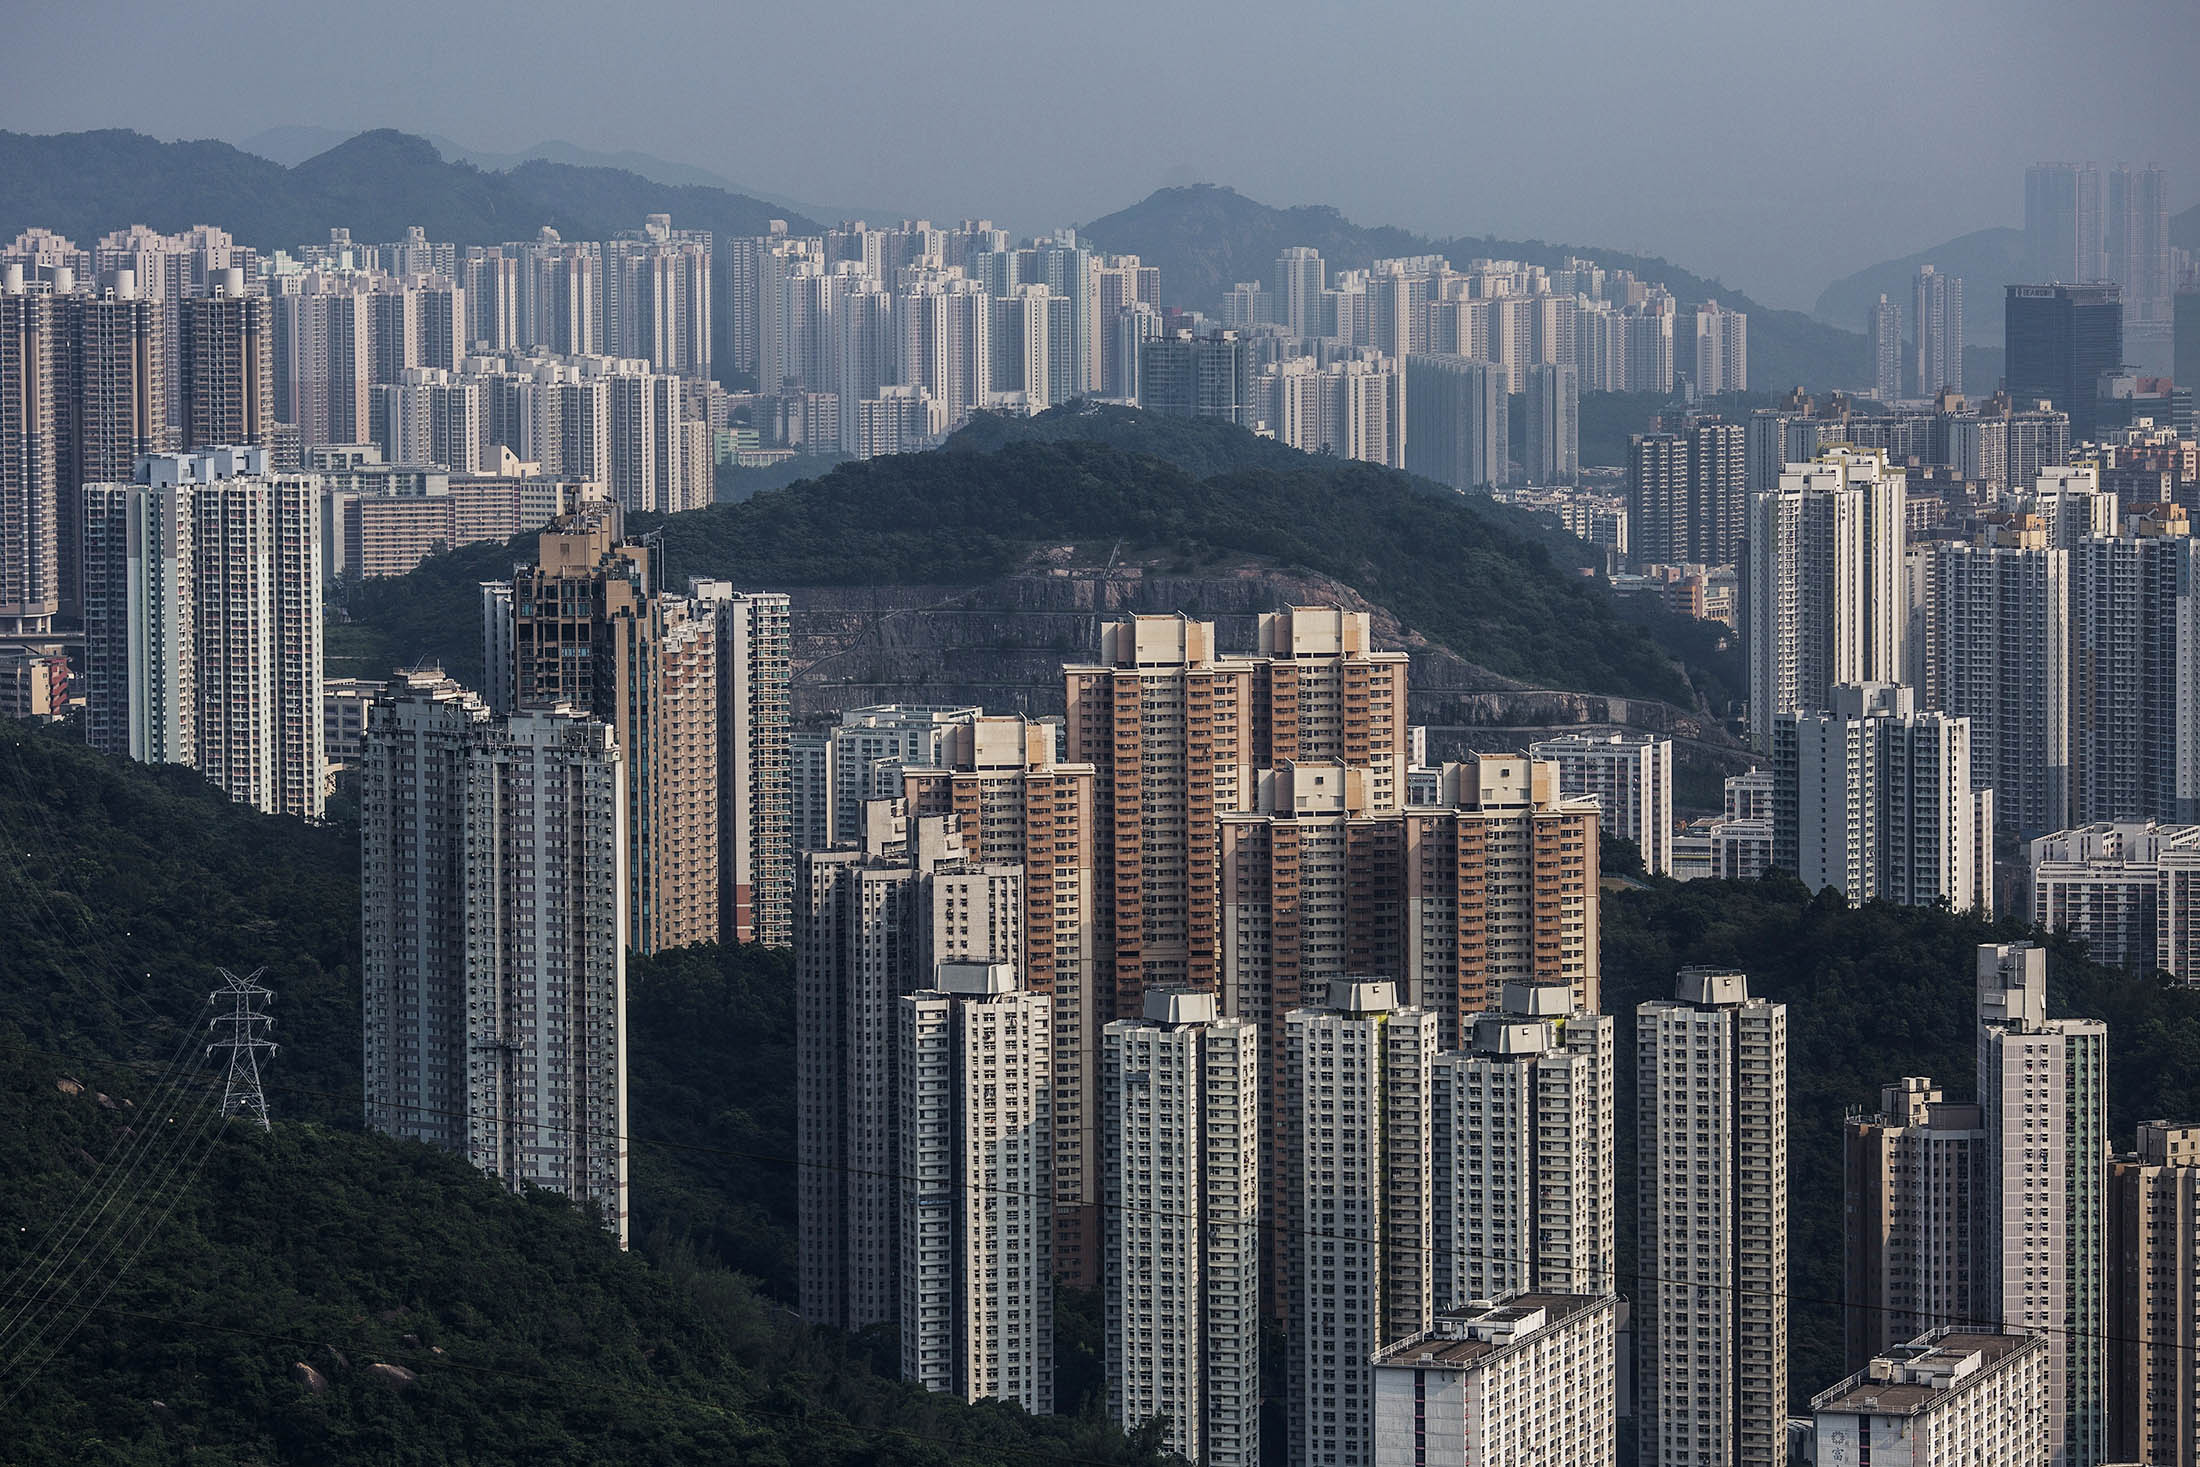 Hong Kong Land Prices Baffle Tycoon With 50 Years Experience - Bloomberg